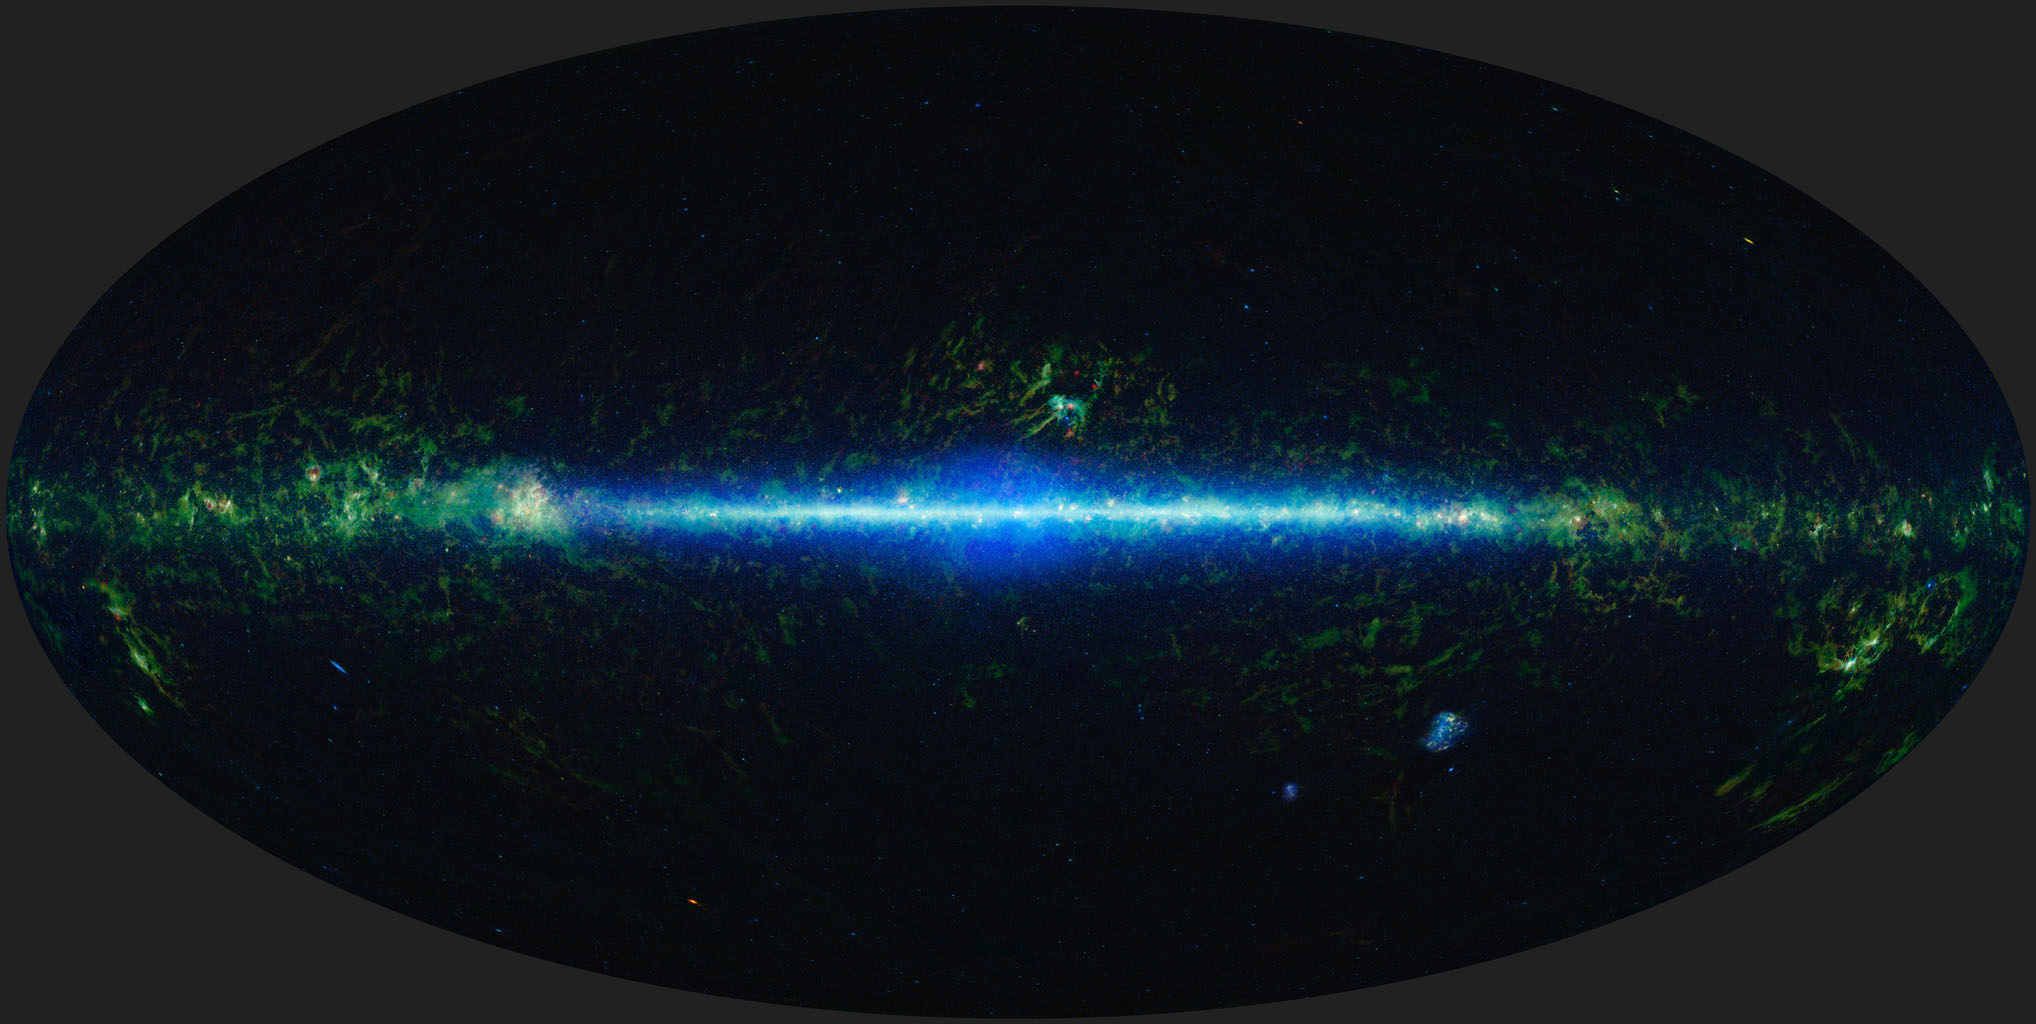 This is a mosaic of the images covering the entire sky as observed by NASA's Wide-field Infrared Survey Explorer (WISE), part of its All-Sky Data Release. In this mosaic, the Milky Way Galaxy runs horizontally across the map.